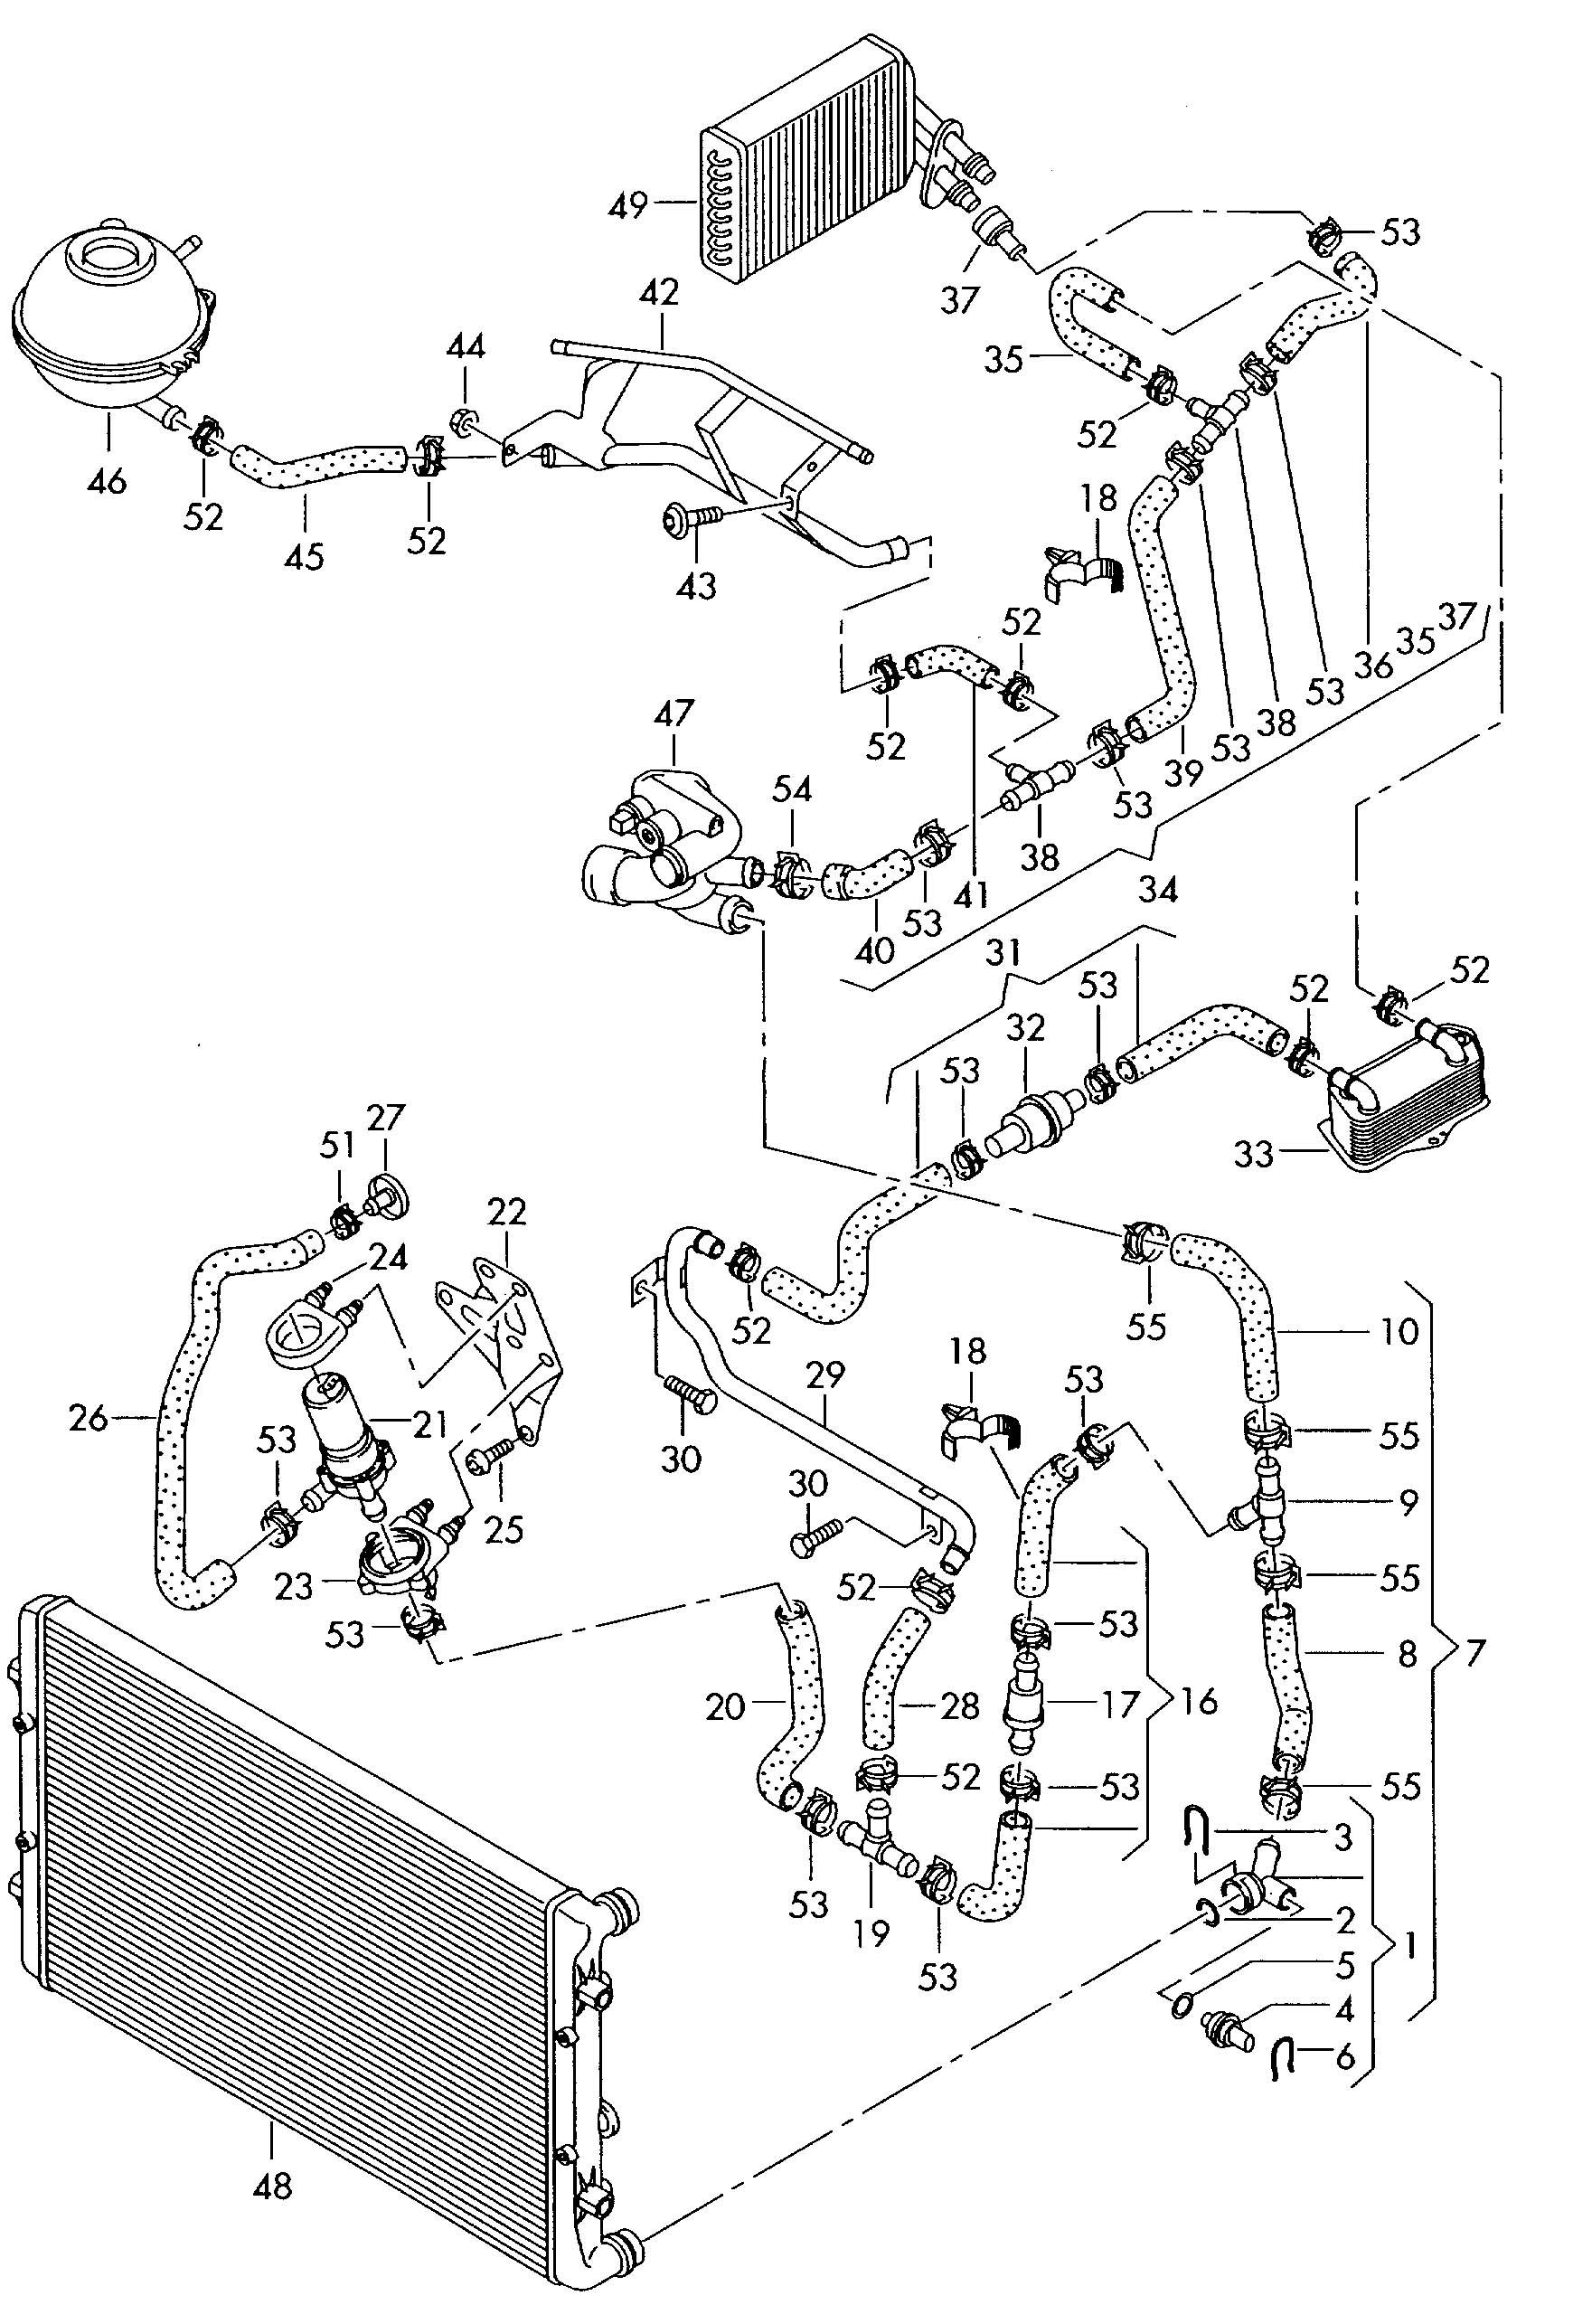 audi a3 engine diagram wiring library 2001 audi a8 audi a3 cooling system diagram audi a3, cars and motorcycles, cooling system